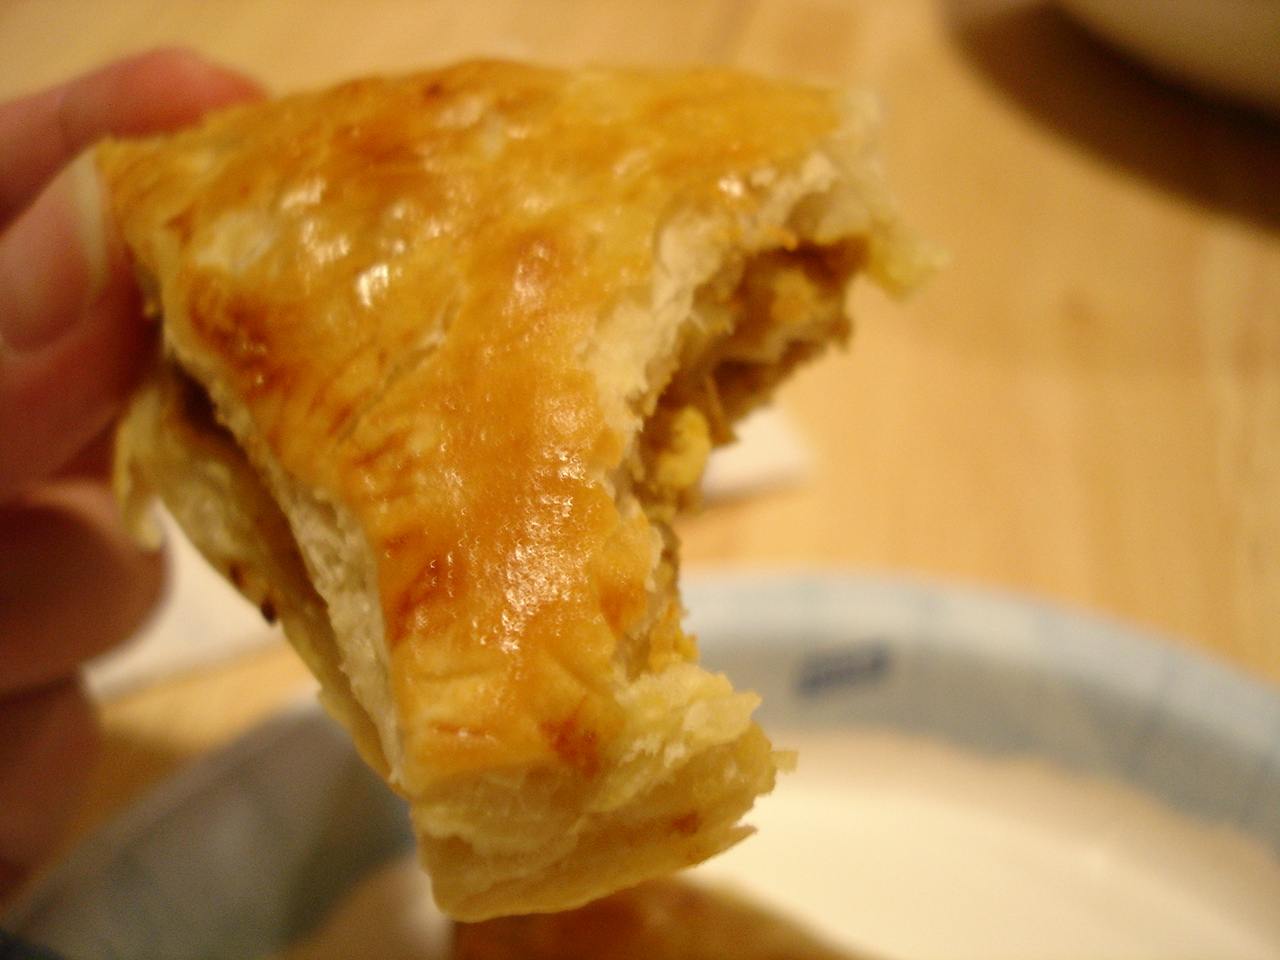 File:Bite of Curry Puff.jpg - Wikimedia Commons